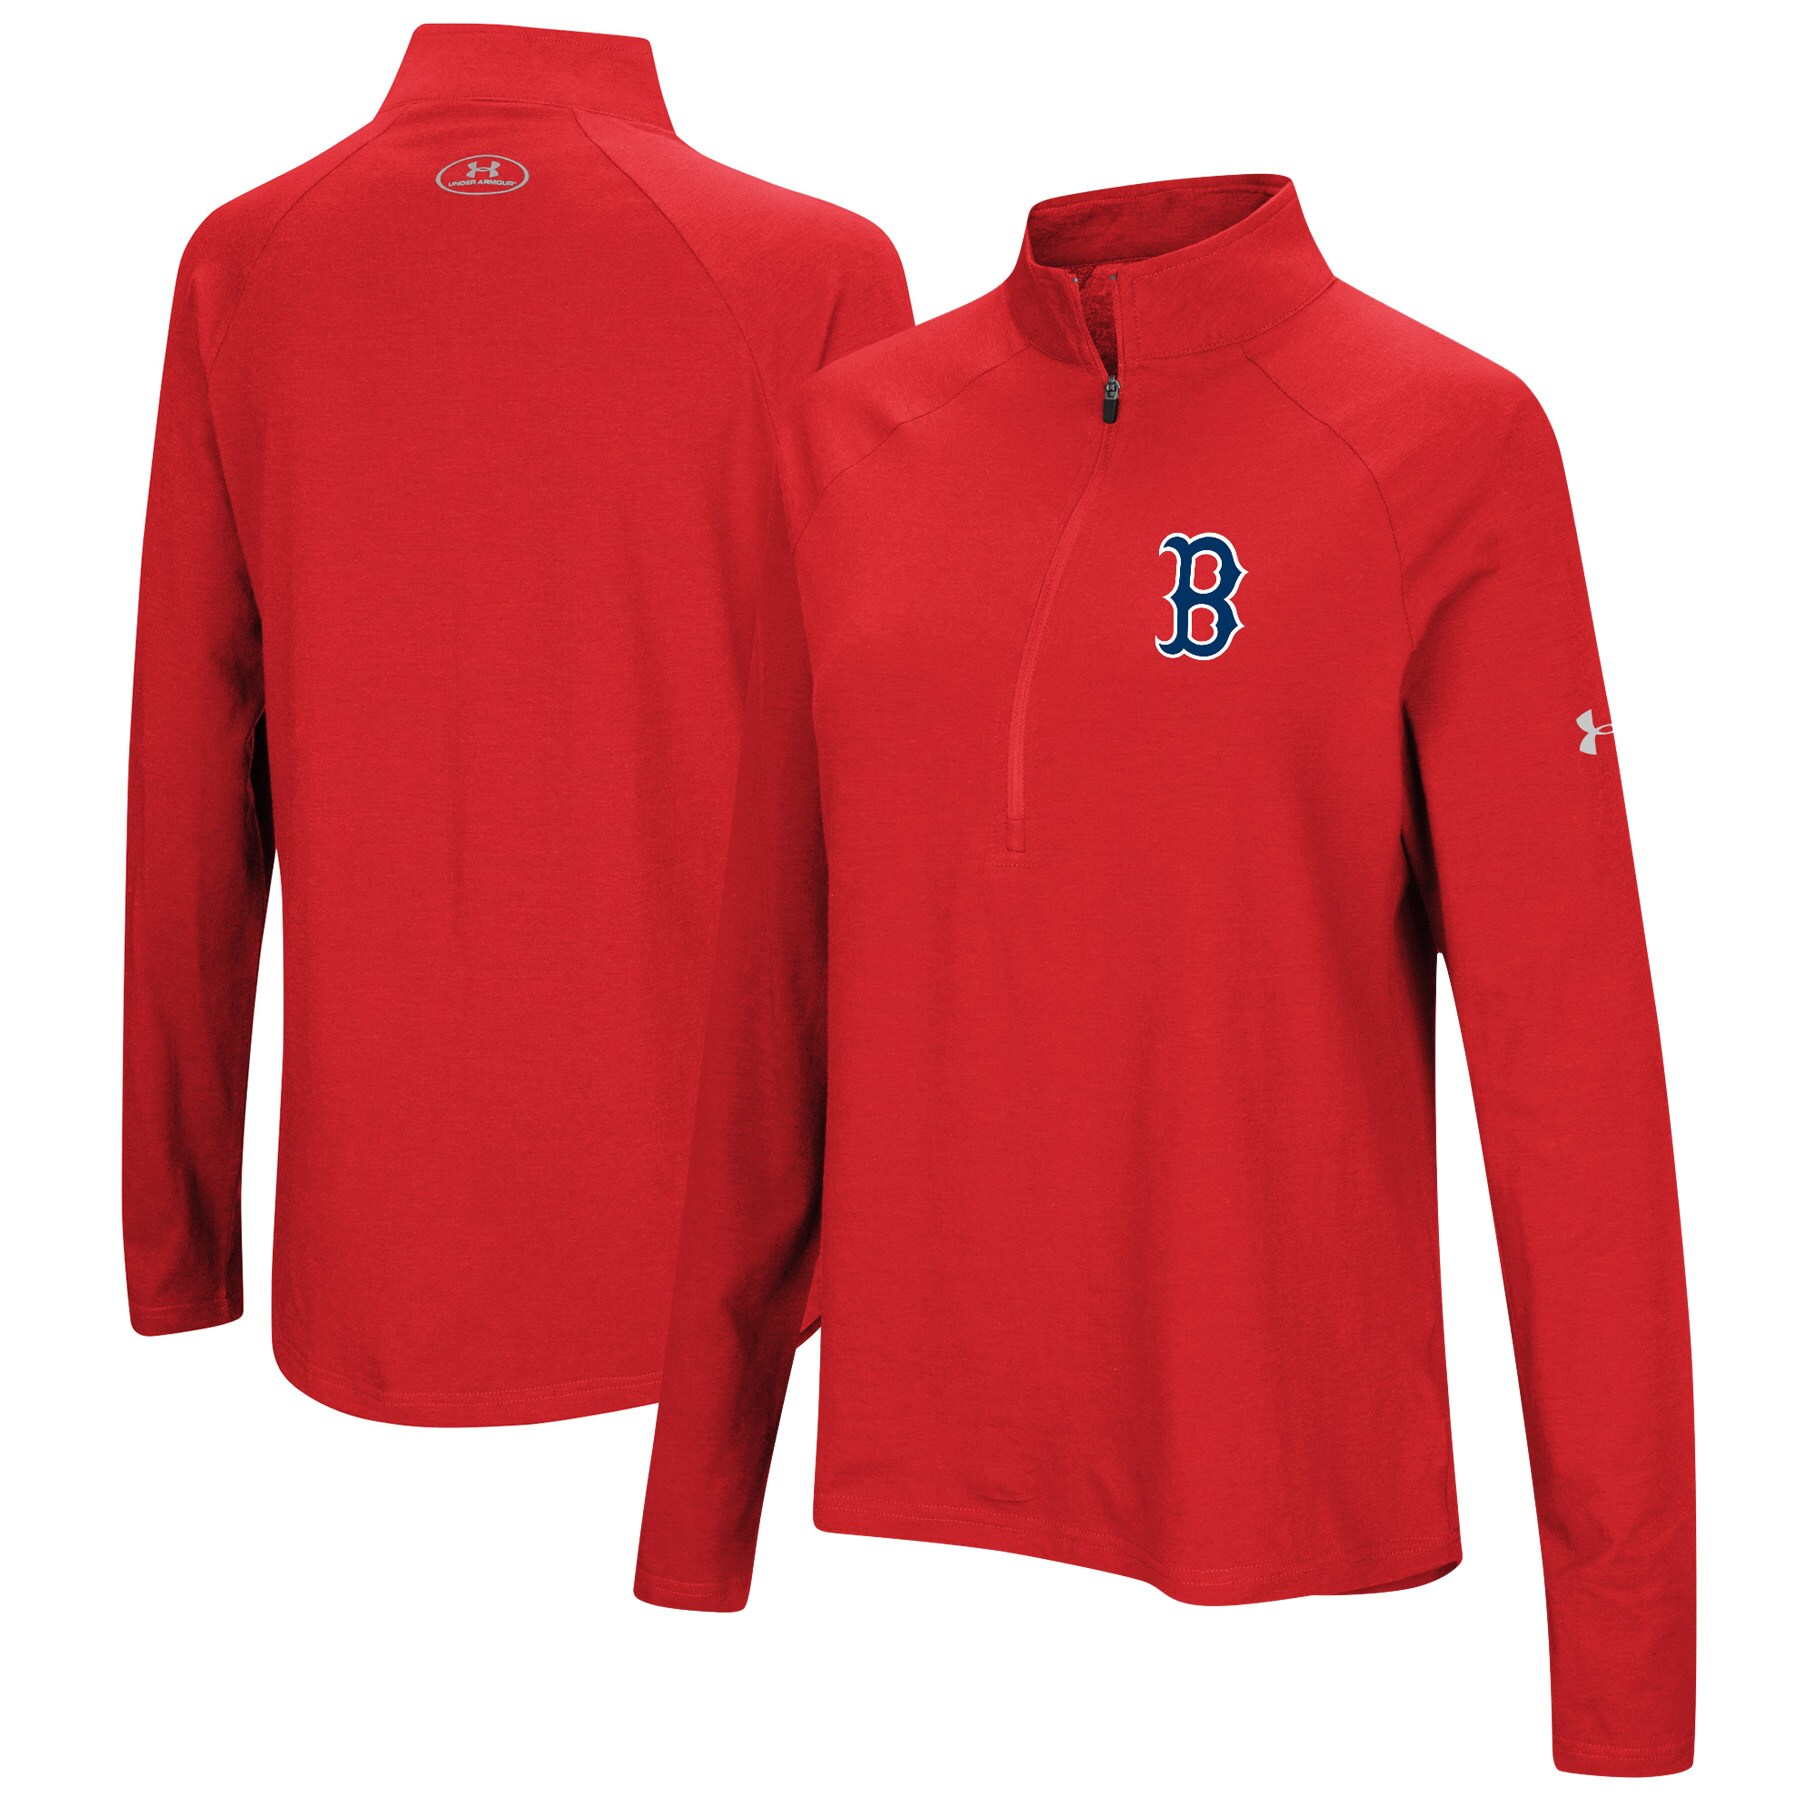 Boston Red Sox Under Armour Women's Passion Performance Tri-Blend Raglan Half-Zip Pullover Jacket - Red